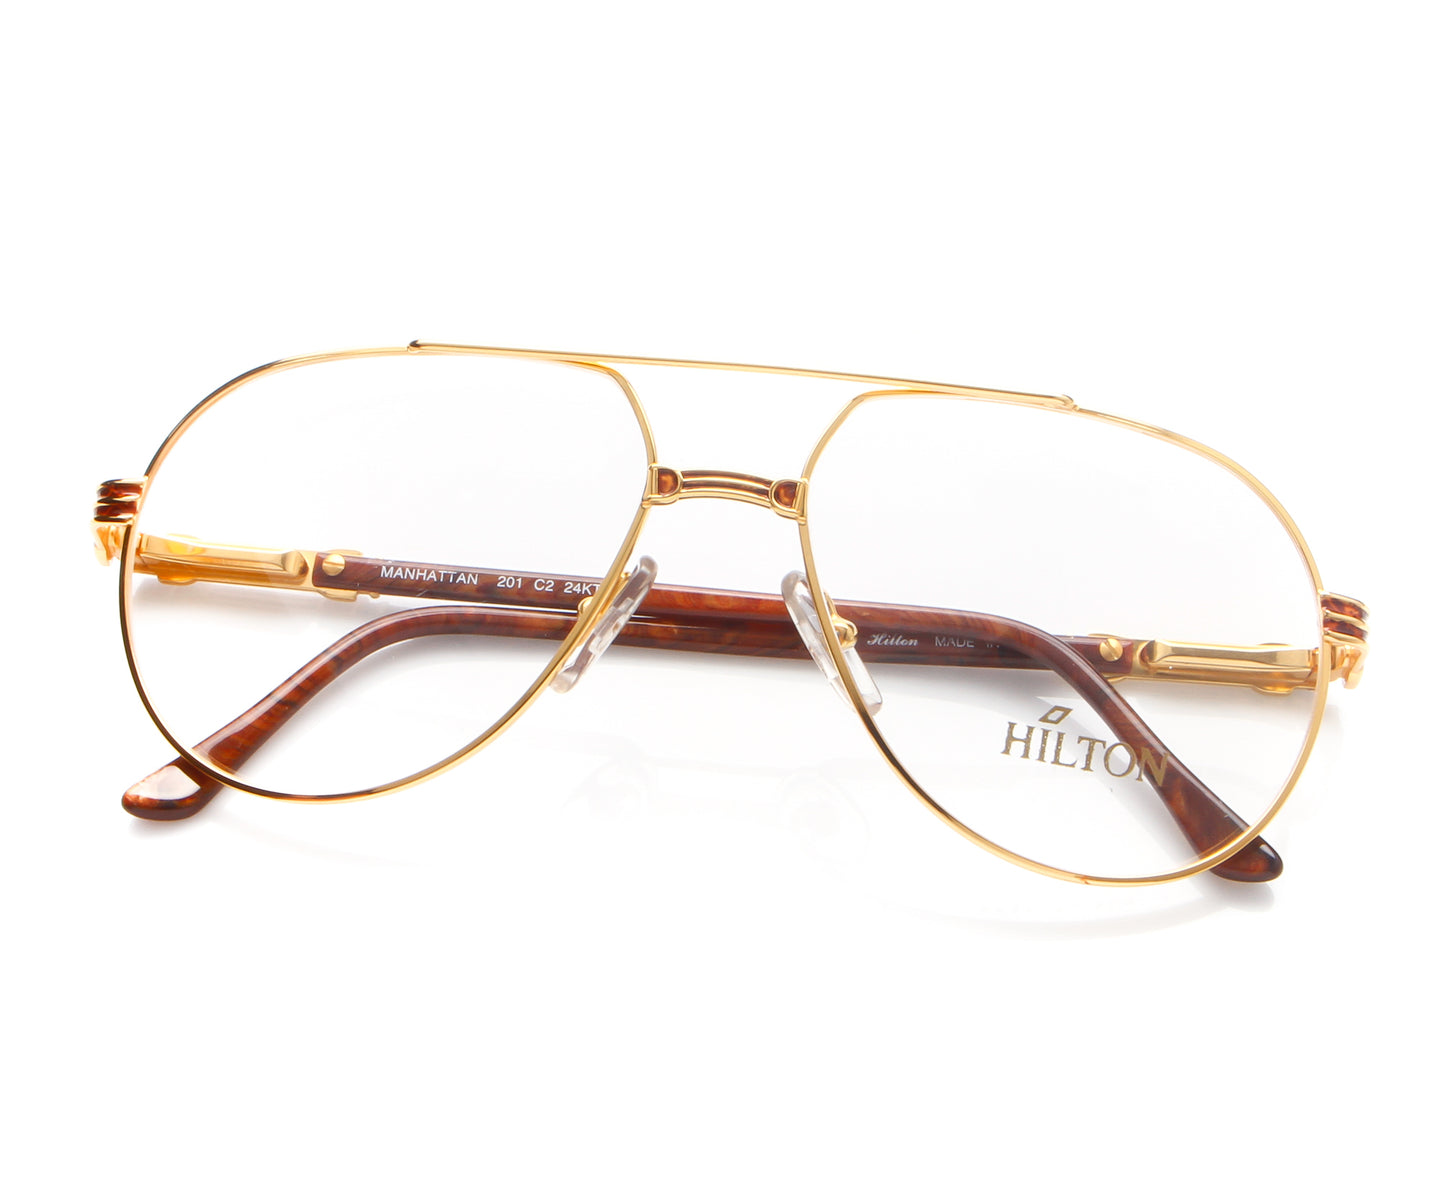 Vintage Hilton Manhattan 201 C2 24KT Thumb, Hilton , glasses frames, eyeglasses online, eyeglass frames, mens glasses, womens glasses, buy glasses online, designer eyeglasses, vintage sunglasses, retro sunglasses, vintage glasses, sunglass, eyeglass, glasses, lens, vintage frames company, vf